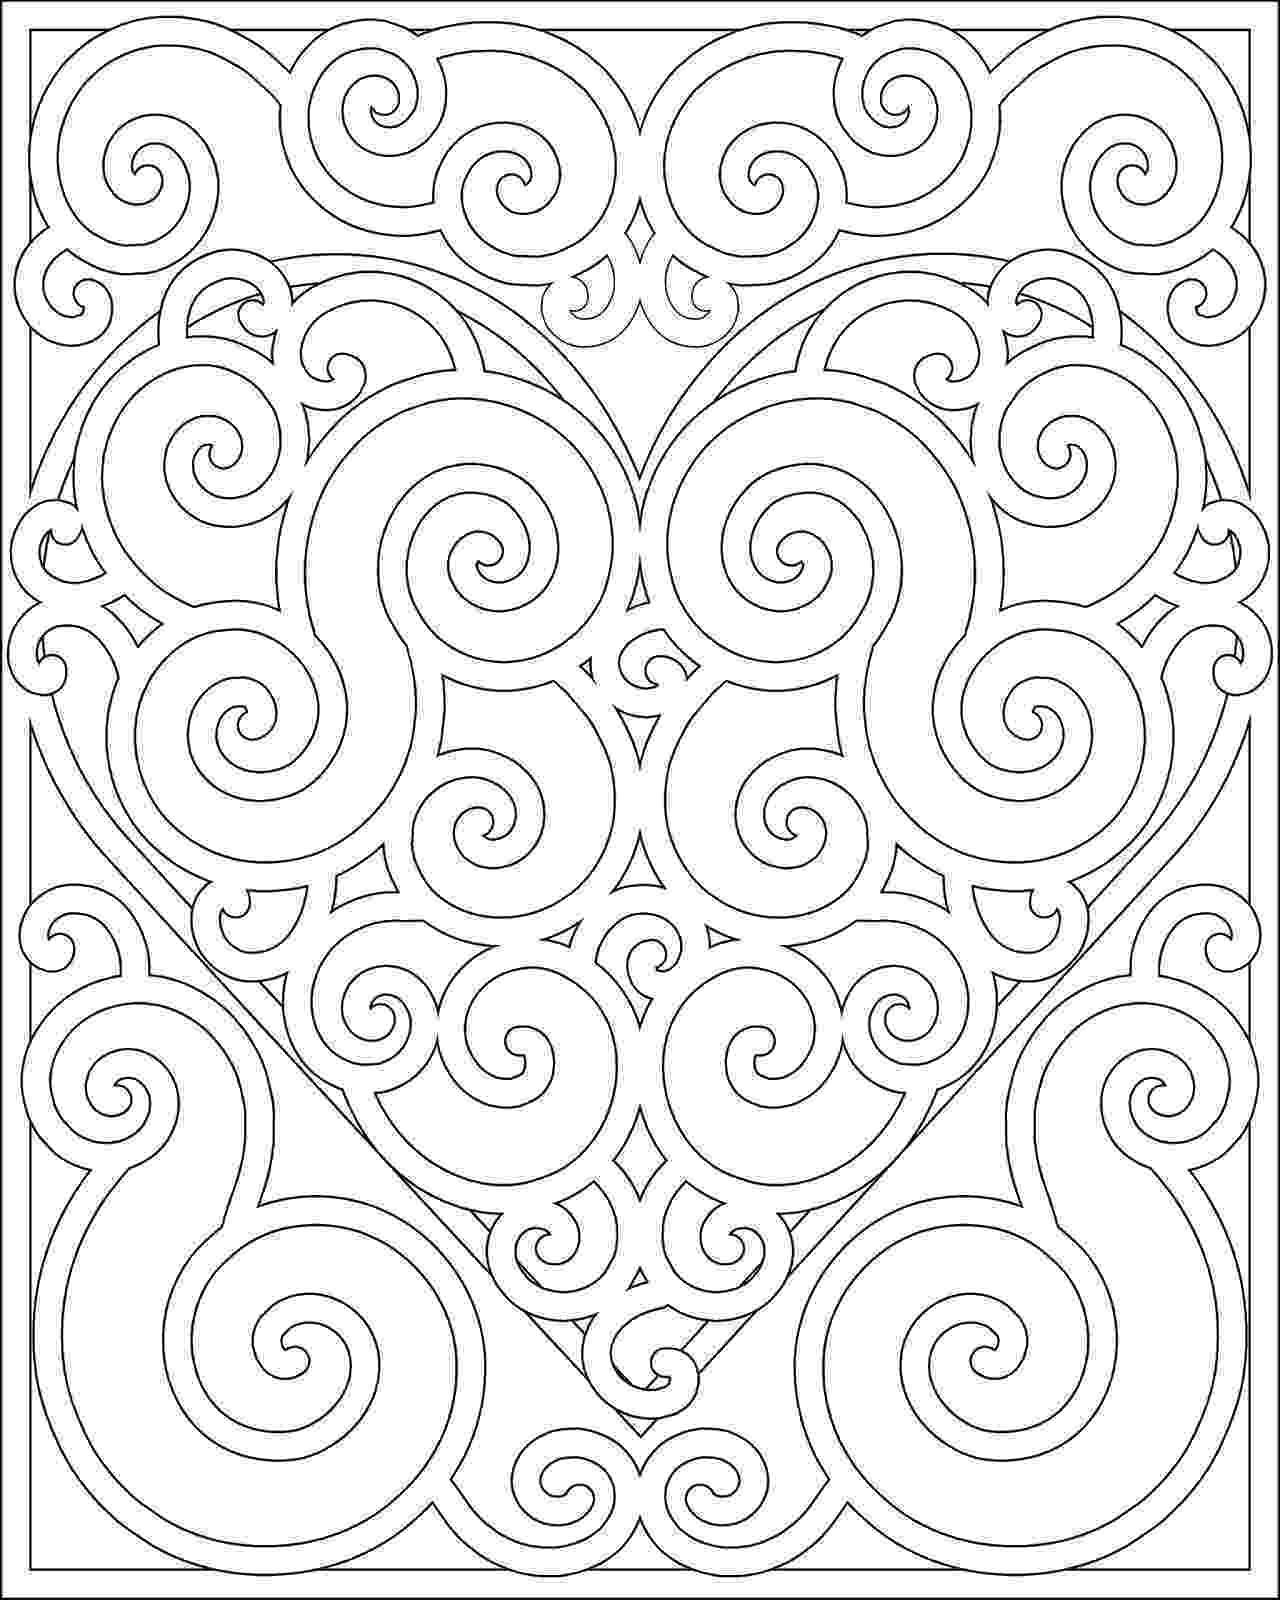 free printable patterns to colour free printable zentangle coloring pages for adults free to colour patterns printable